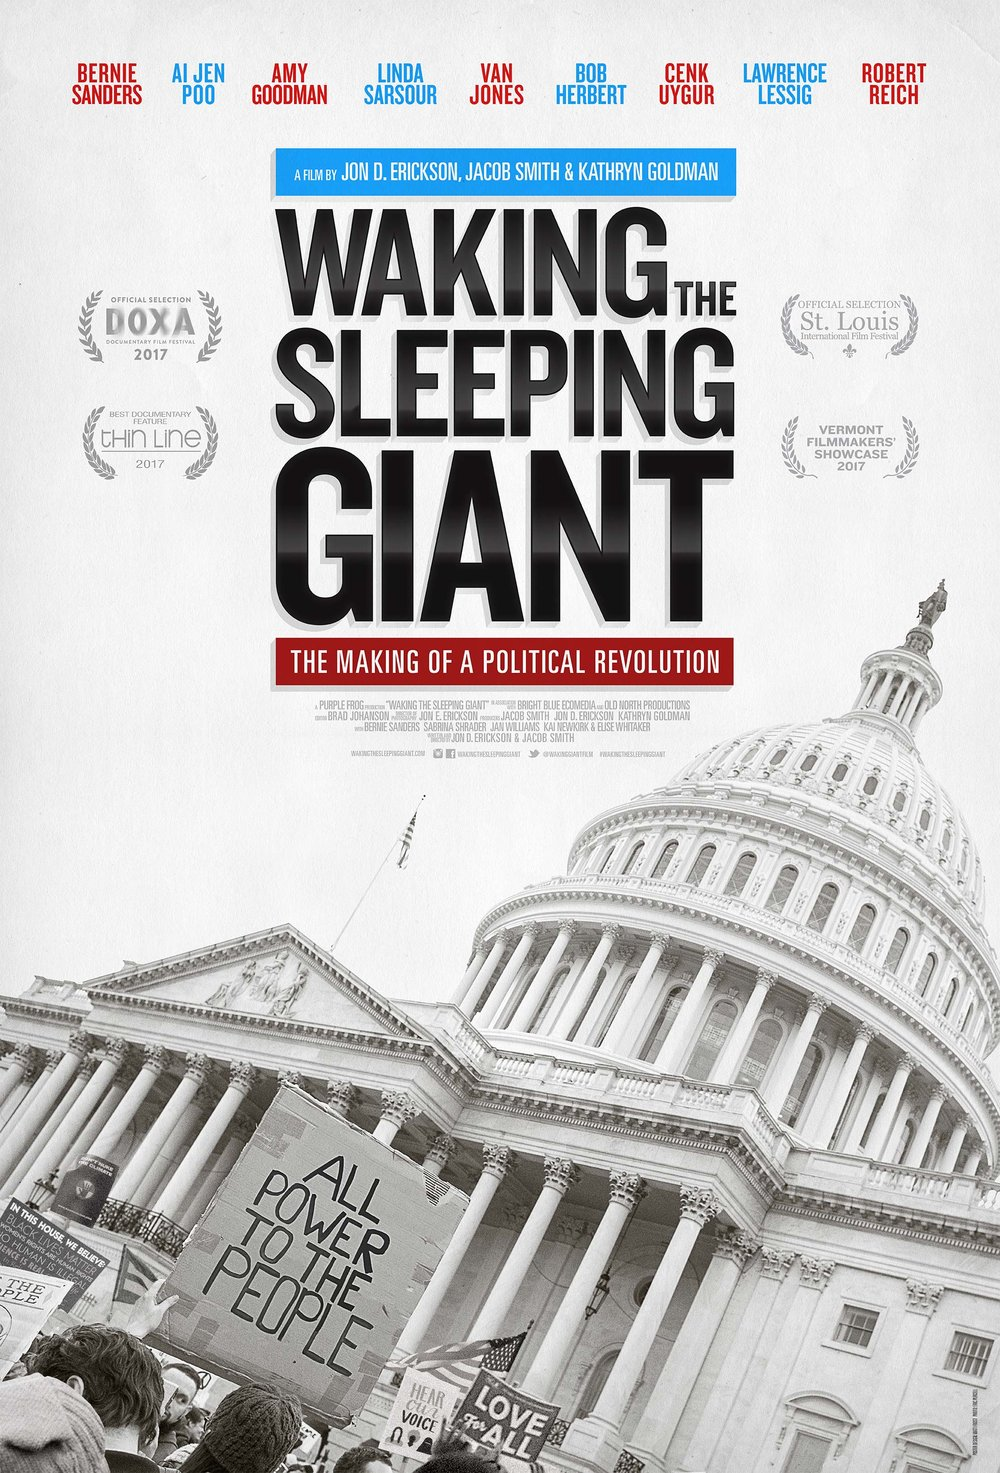 waking_the_sleepinggiant_onesheet_72dpi.jpg